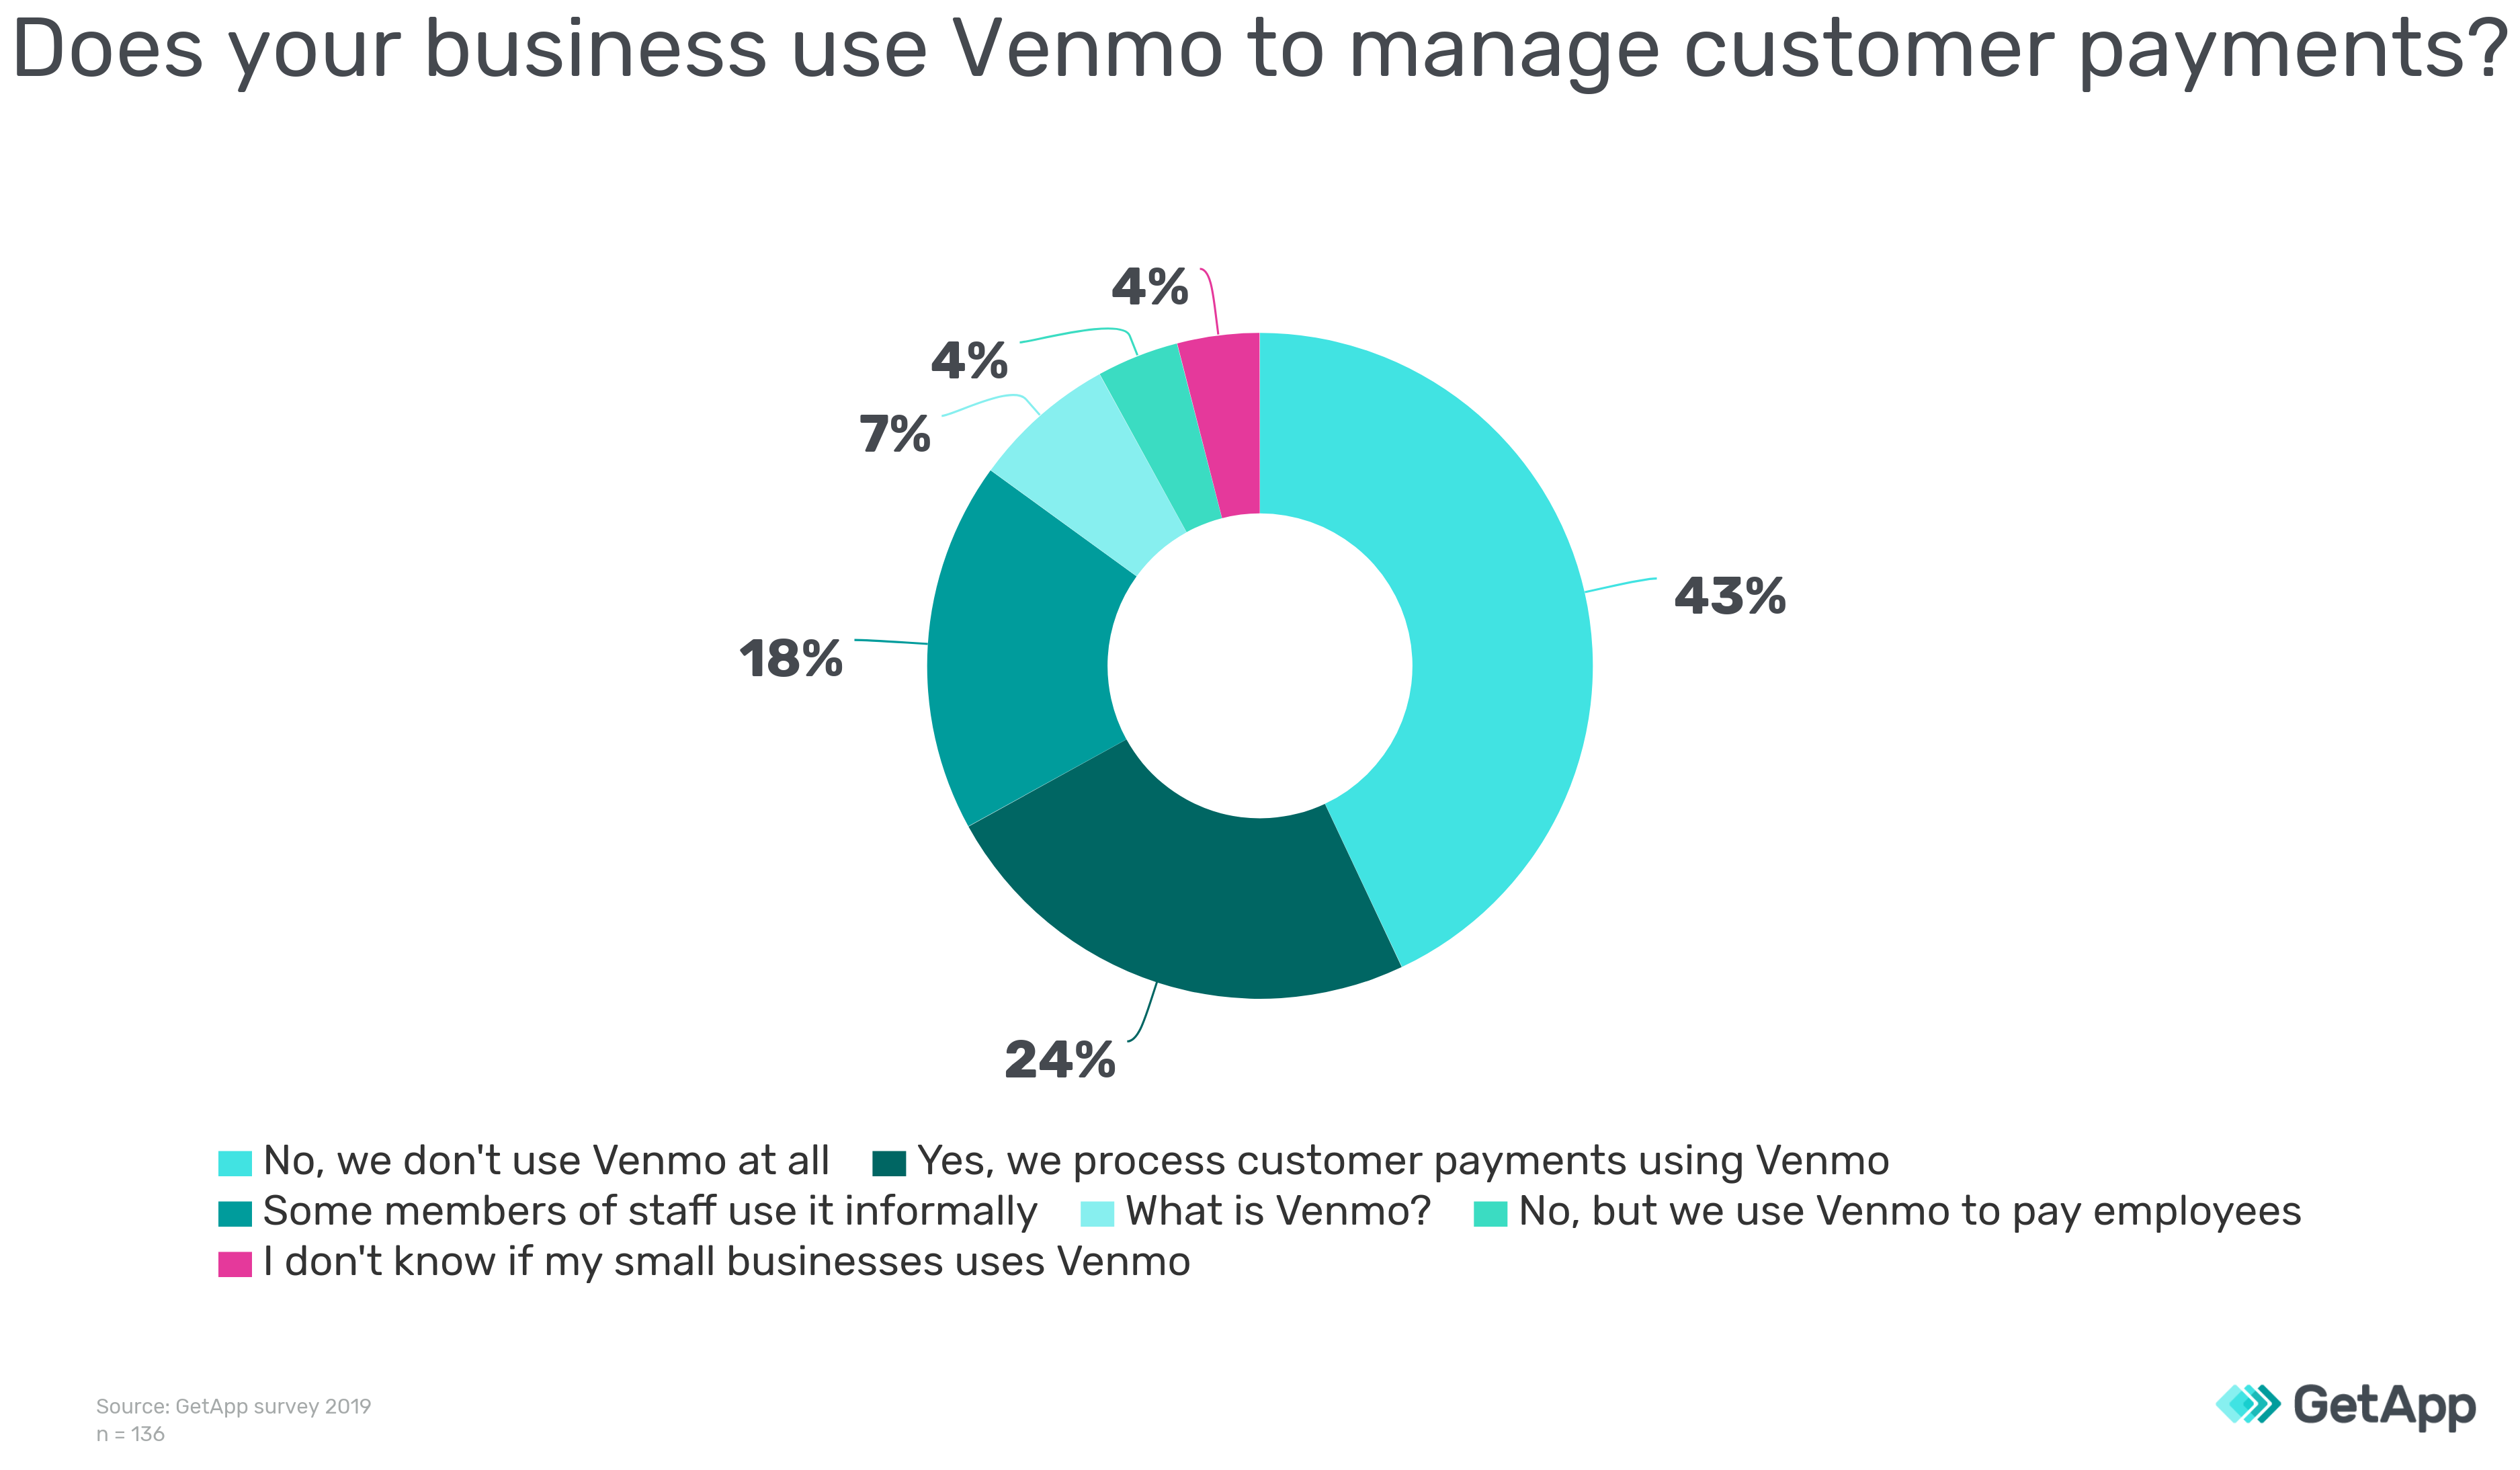 Does your business use Venmo to manage customer payments GetApp pie chart